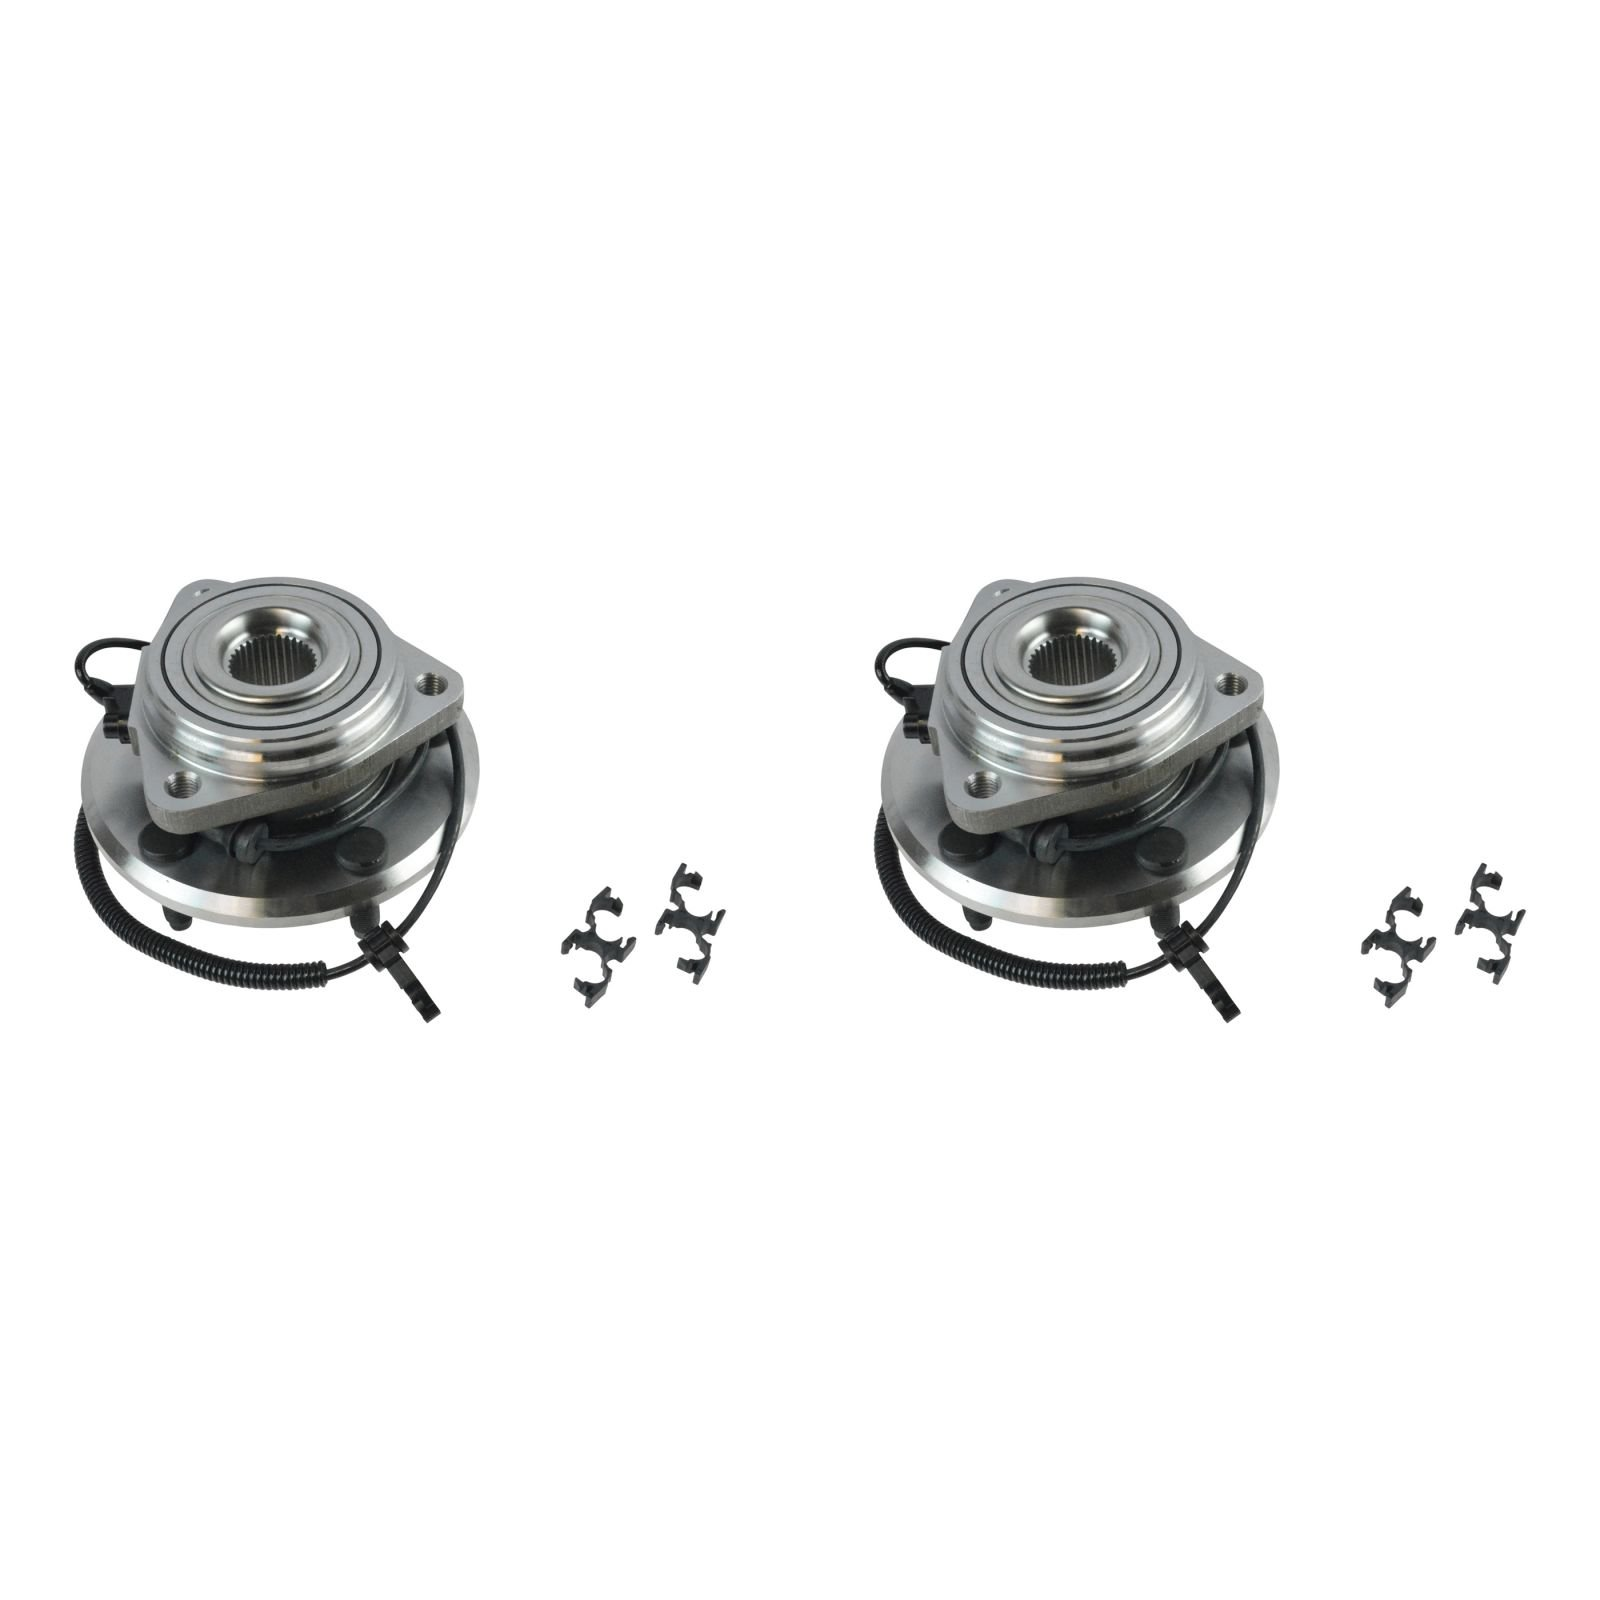 TRQ Wheel Bearing & Hub Assembly Pair Kit LH & RH Front for Jeep Wrangler by TRQ (Image #1)